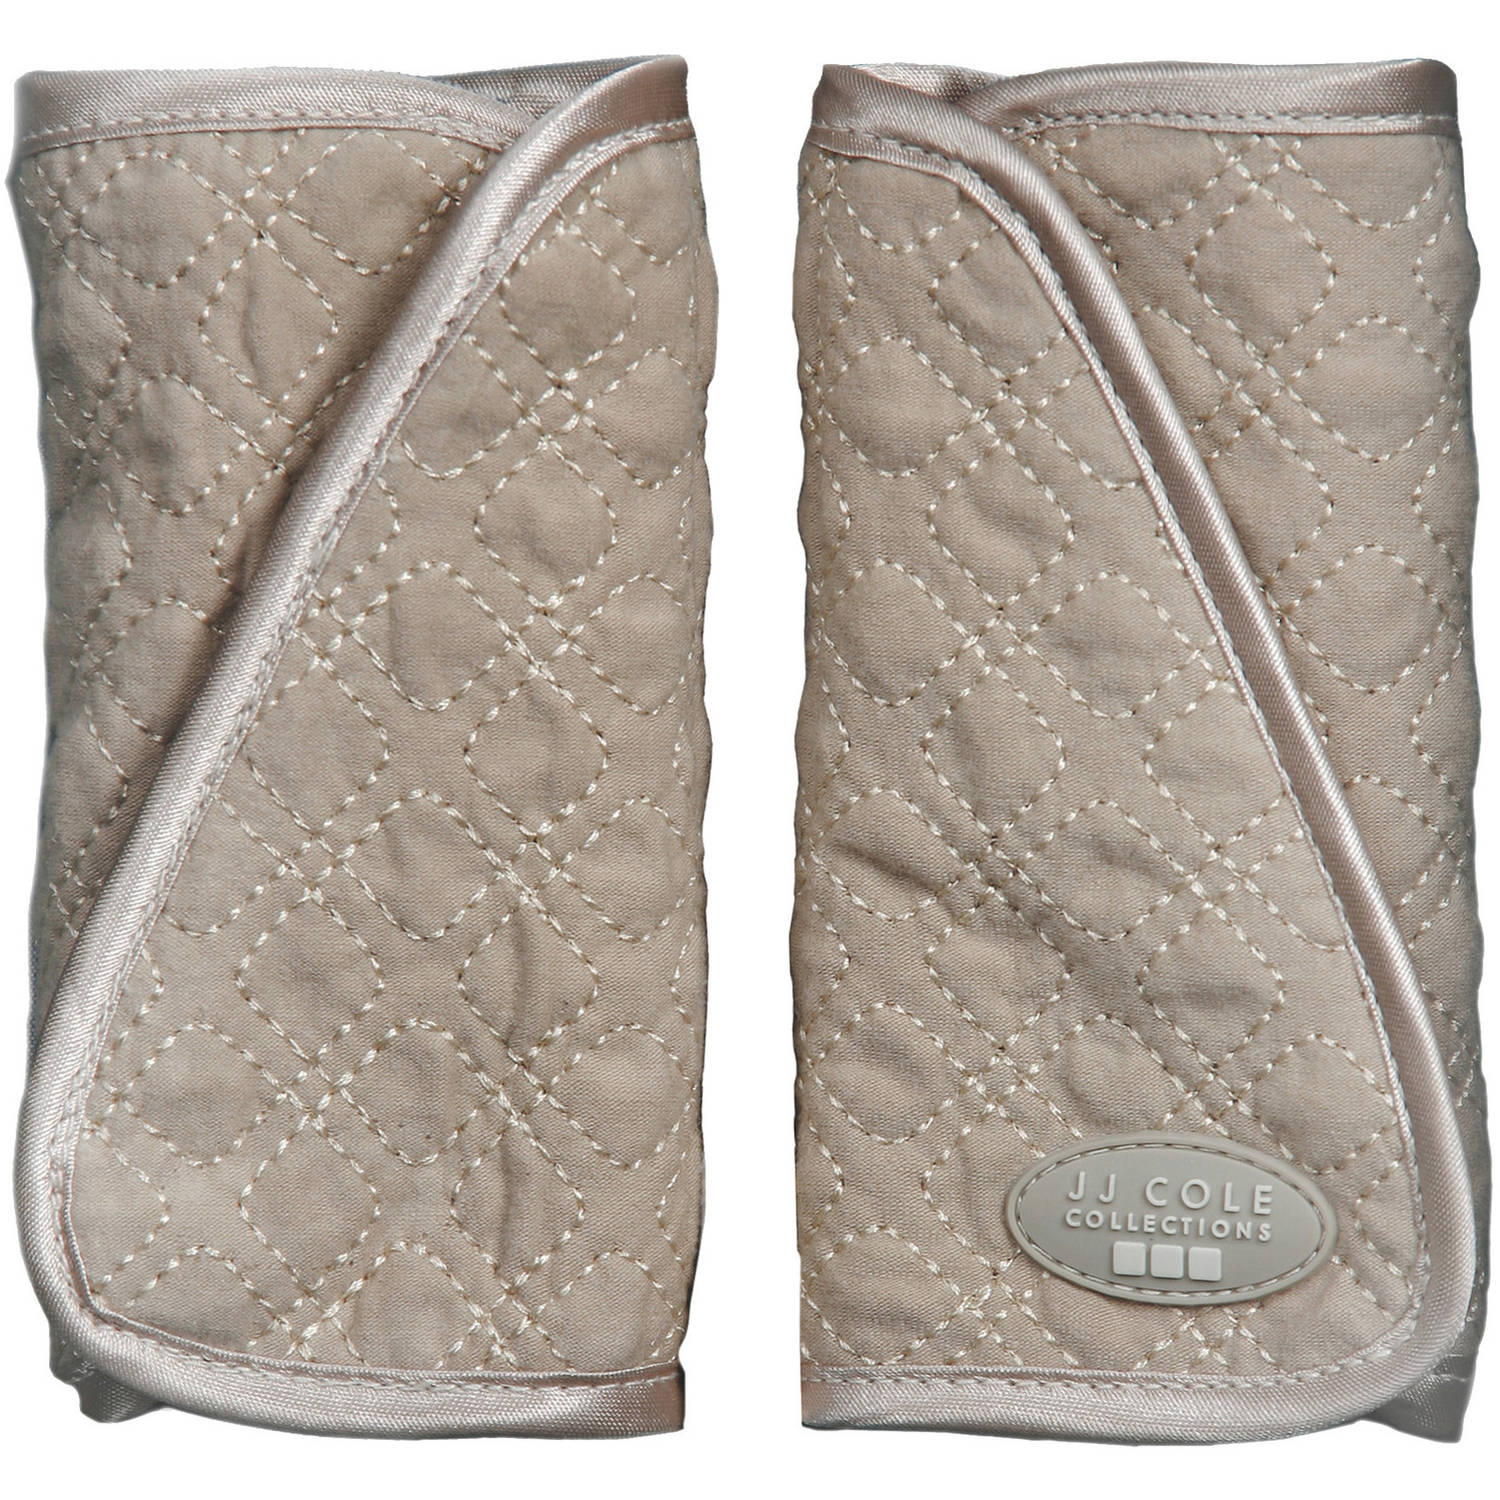 JJ Cole Strap Covers, Khaki